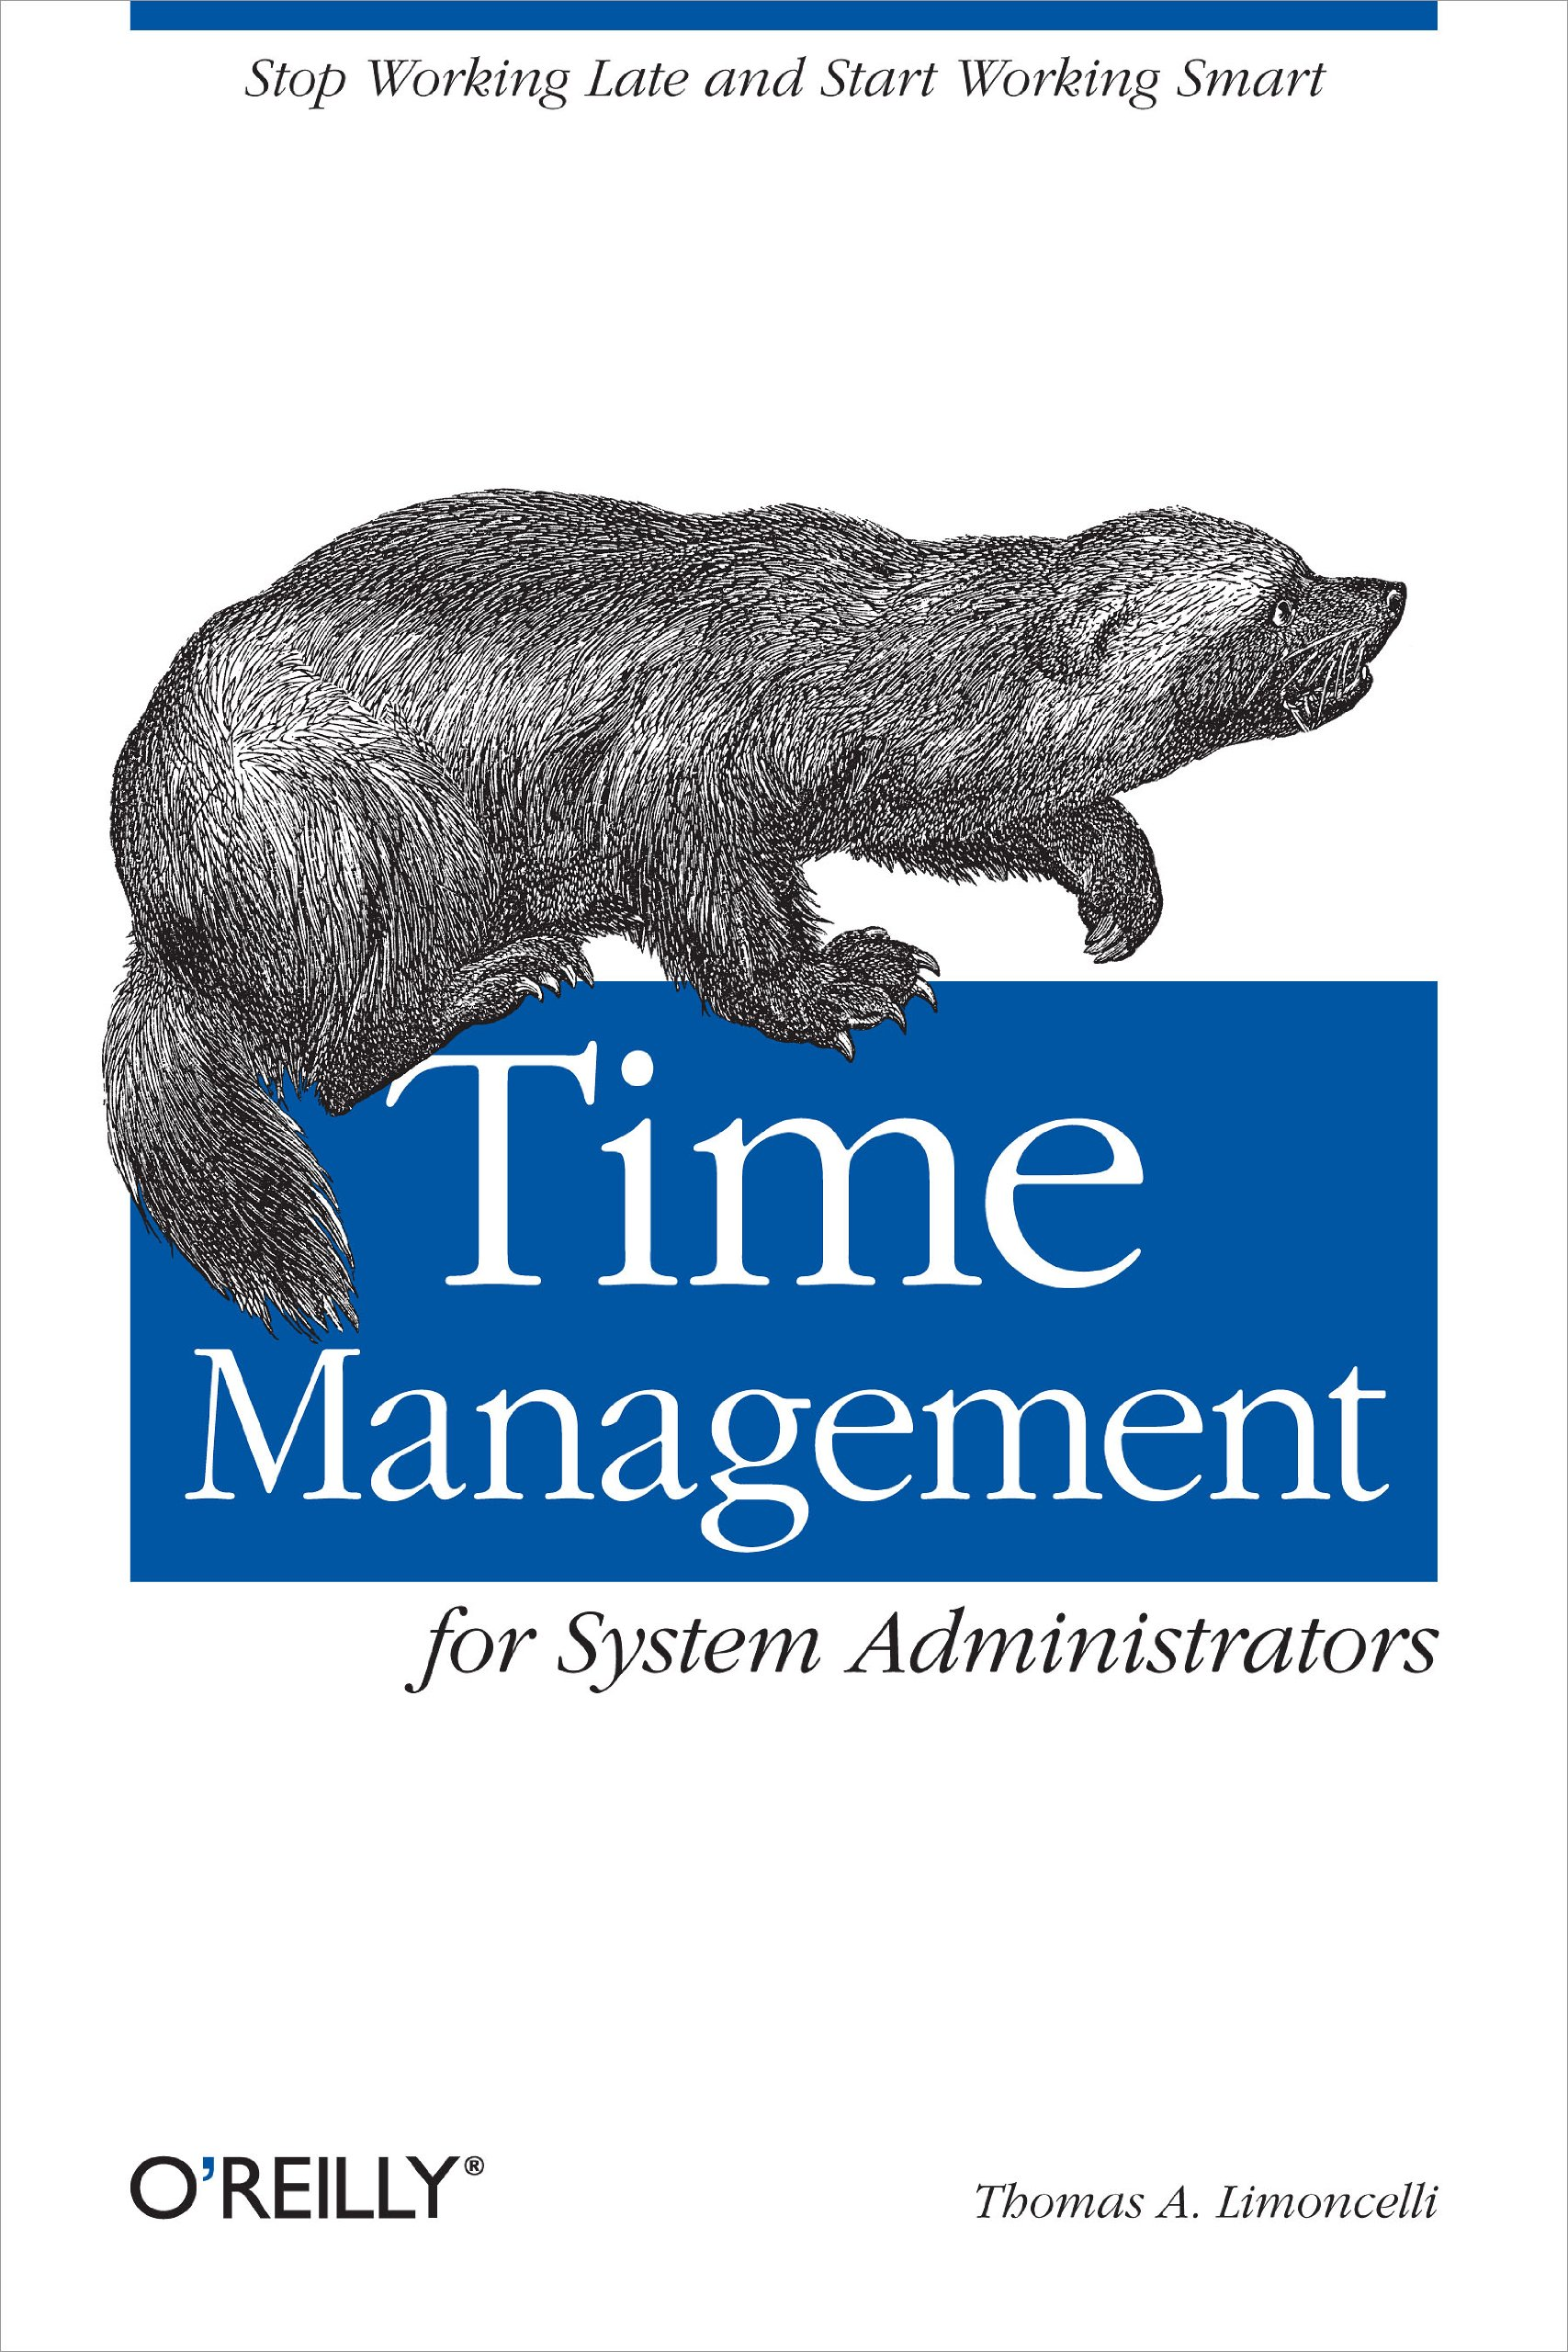 Image OfTime Management For System Administrators: Stop Working Late And Start Working Smart